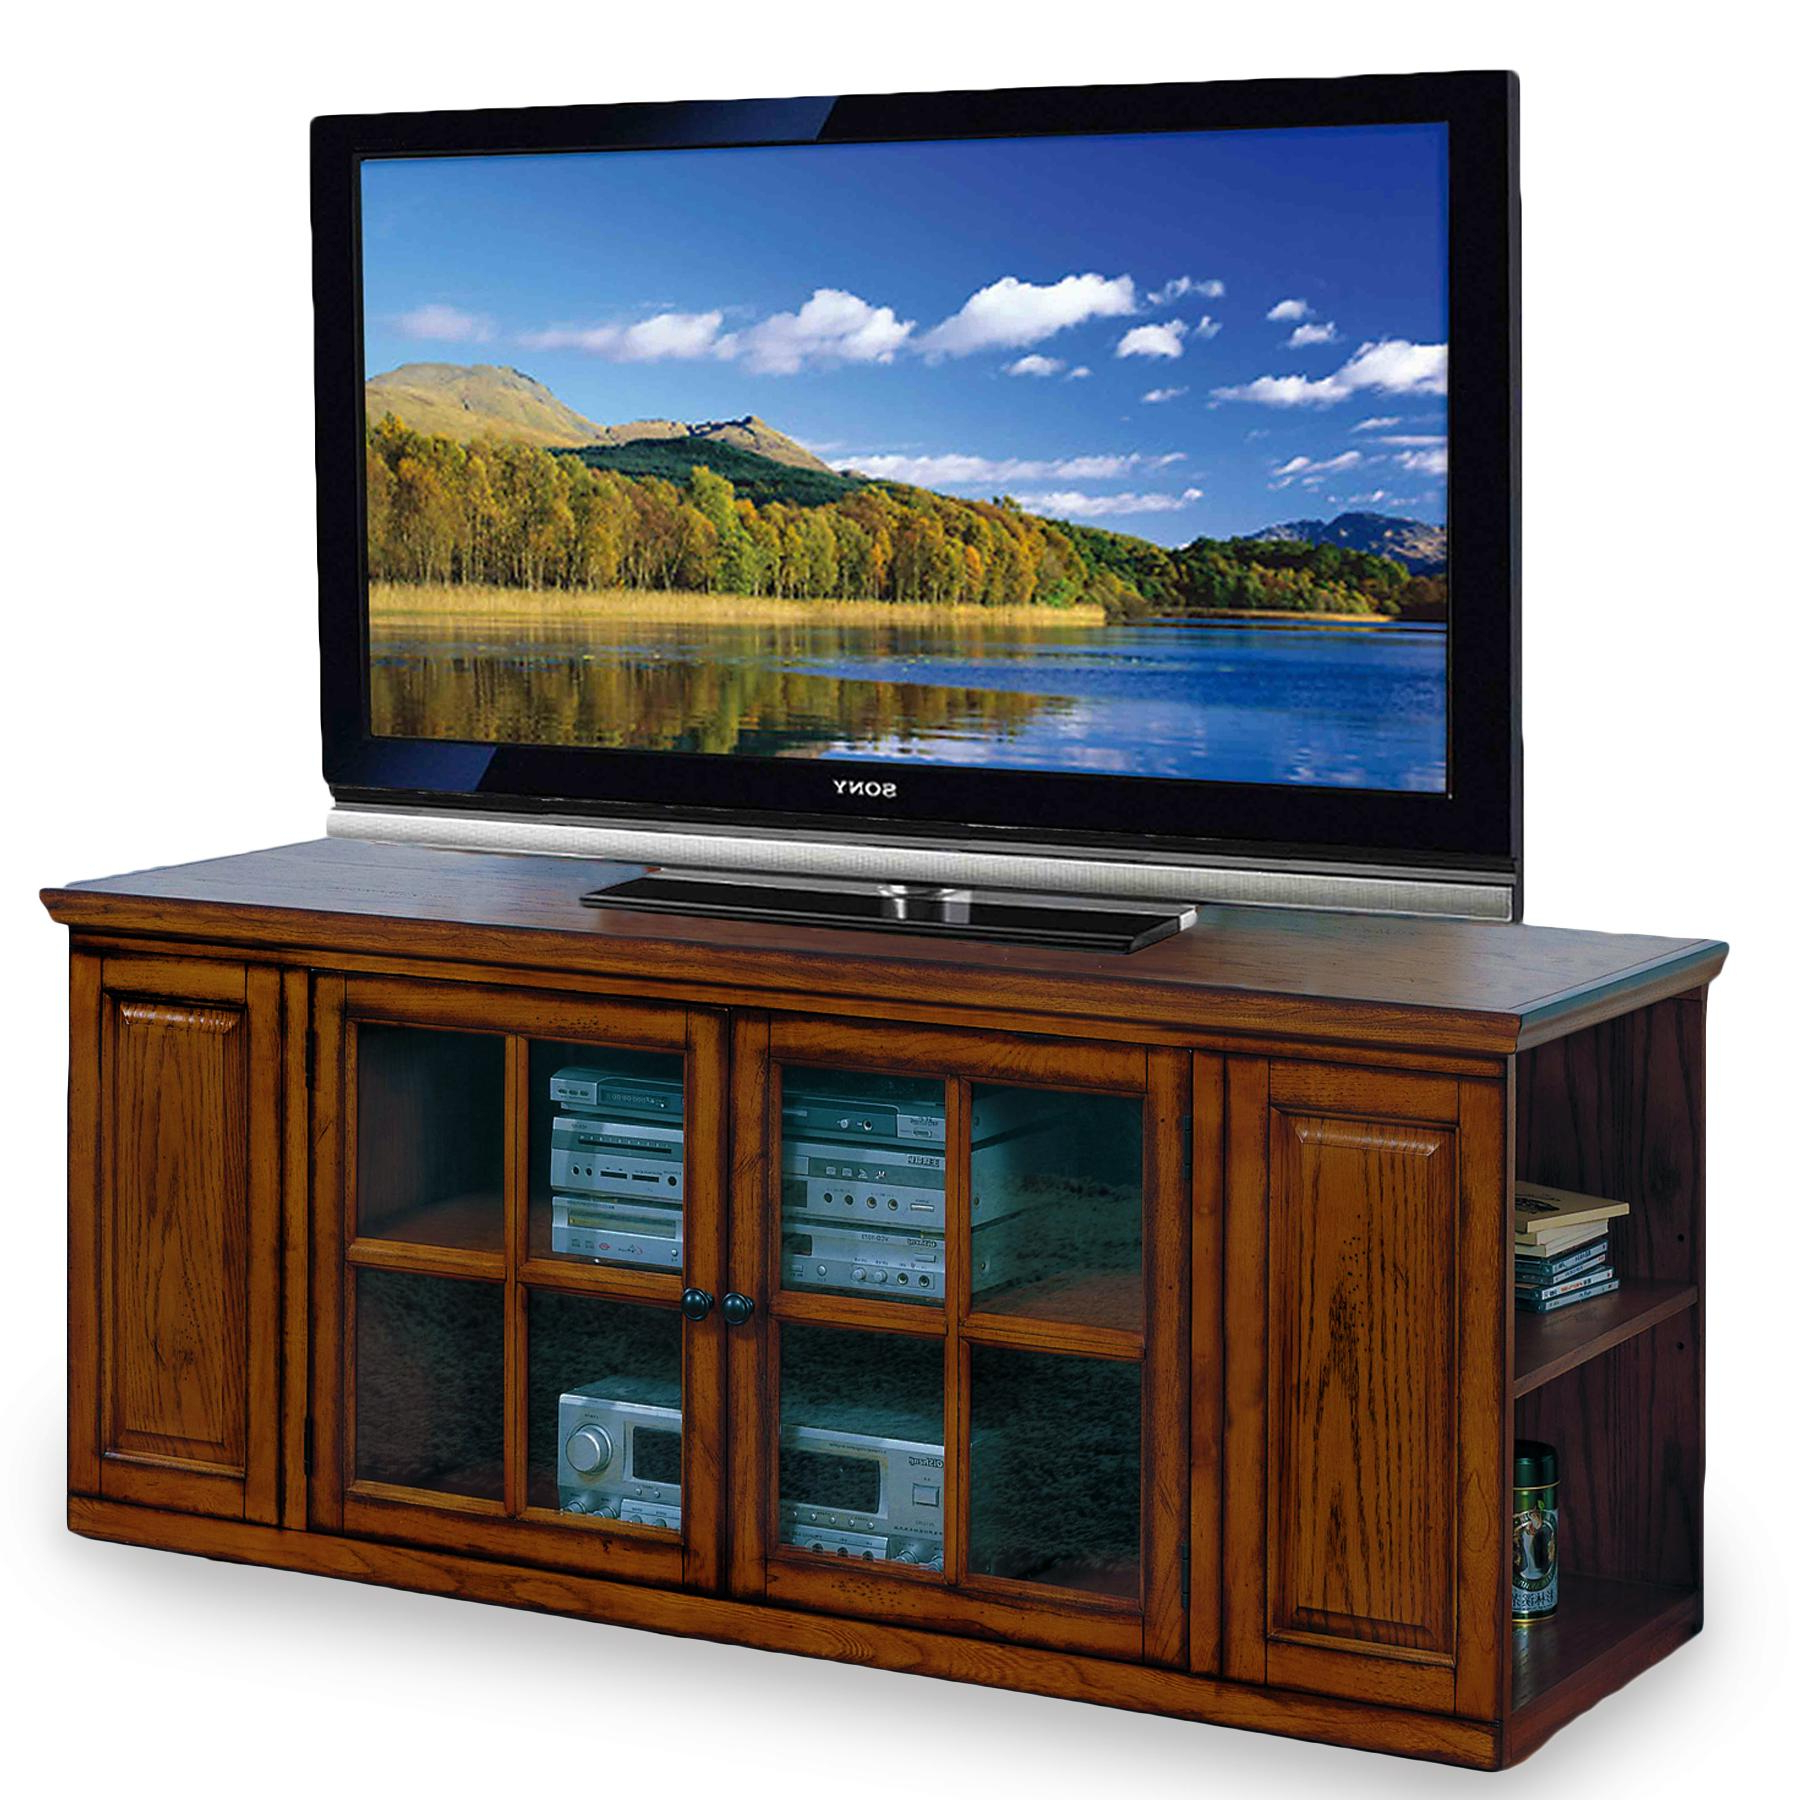 Most Current 40 Inch Corner Tv Stands Pertaining To Amazon: Leick Riley Holliday Tv Stand, 62 Inch, Burnished Oak (View 17 of 20)